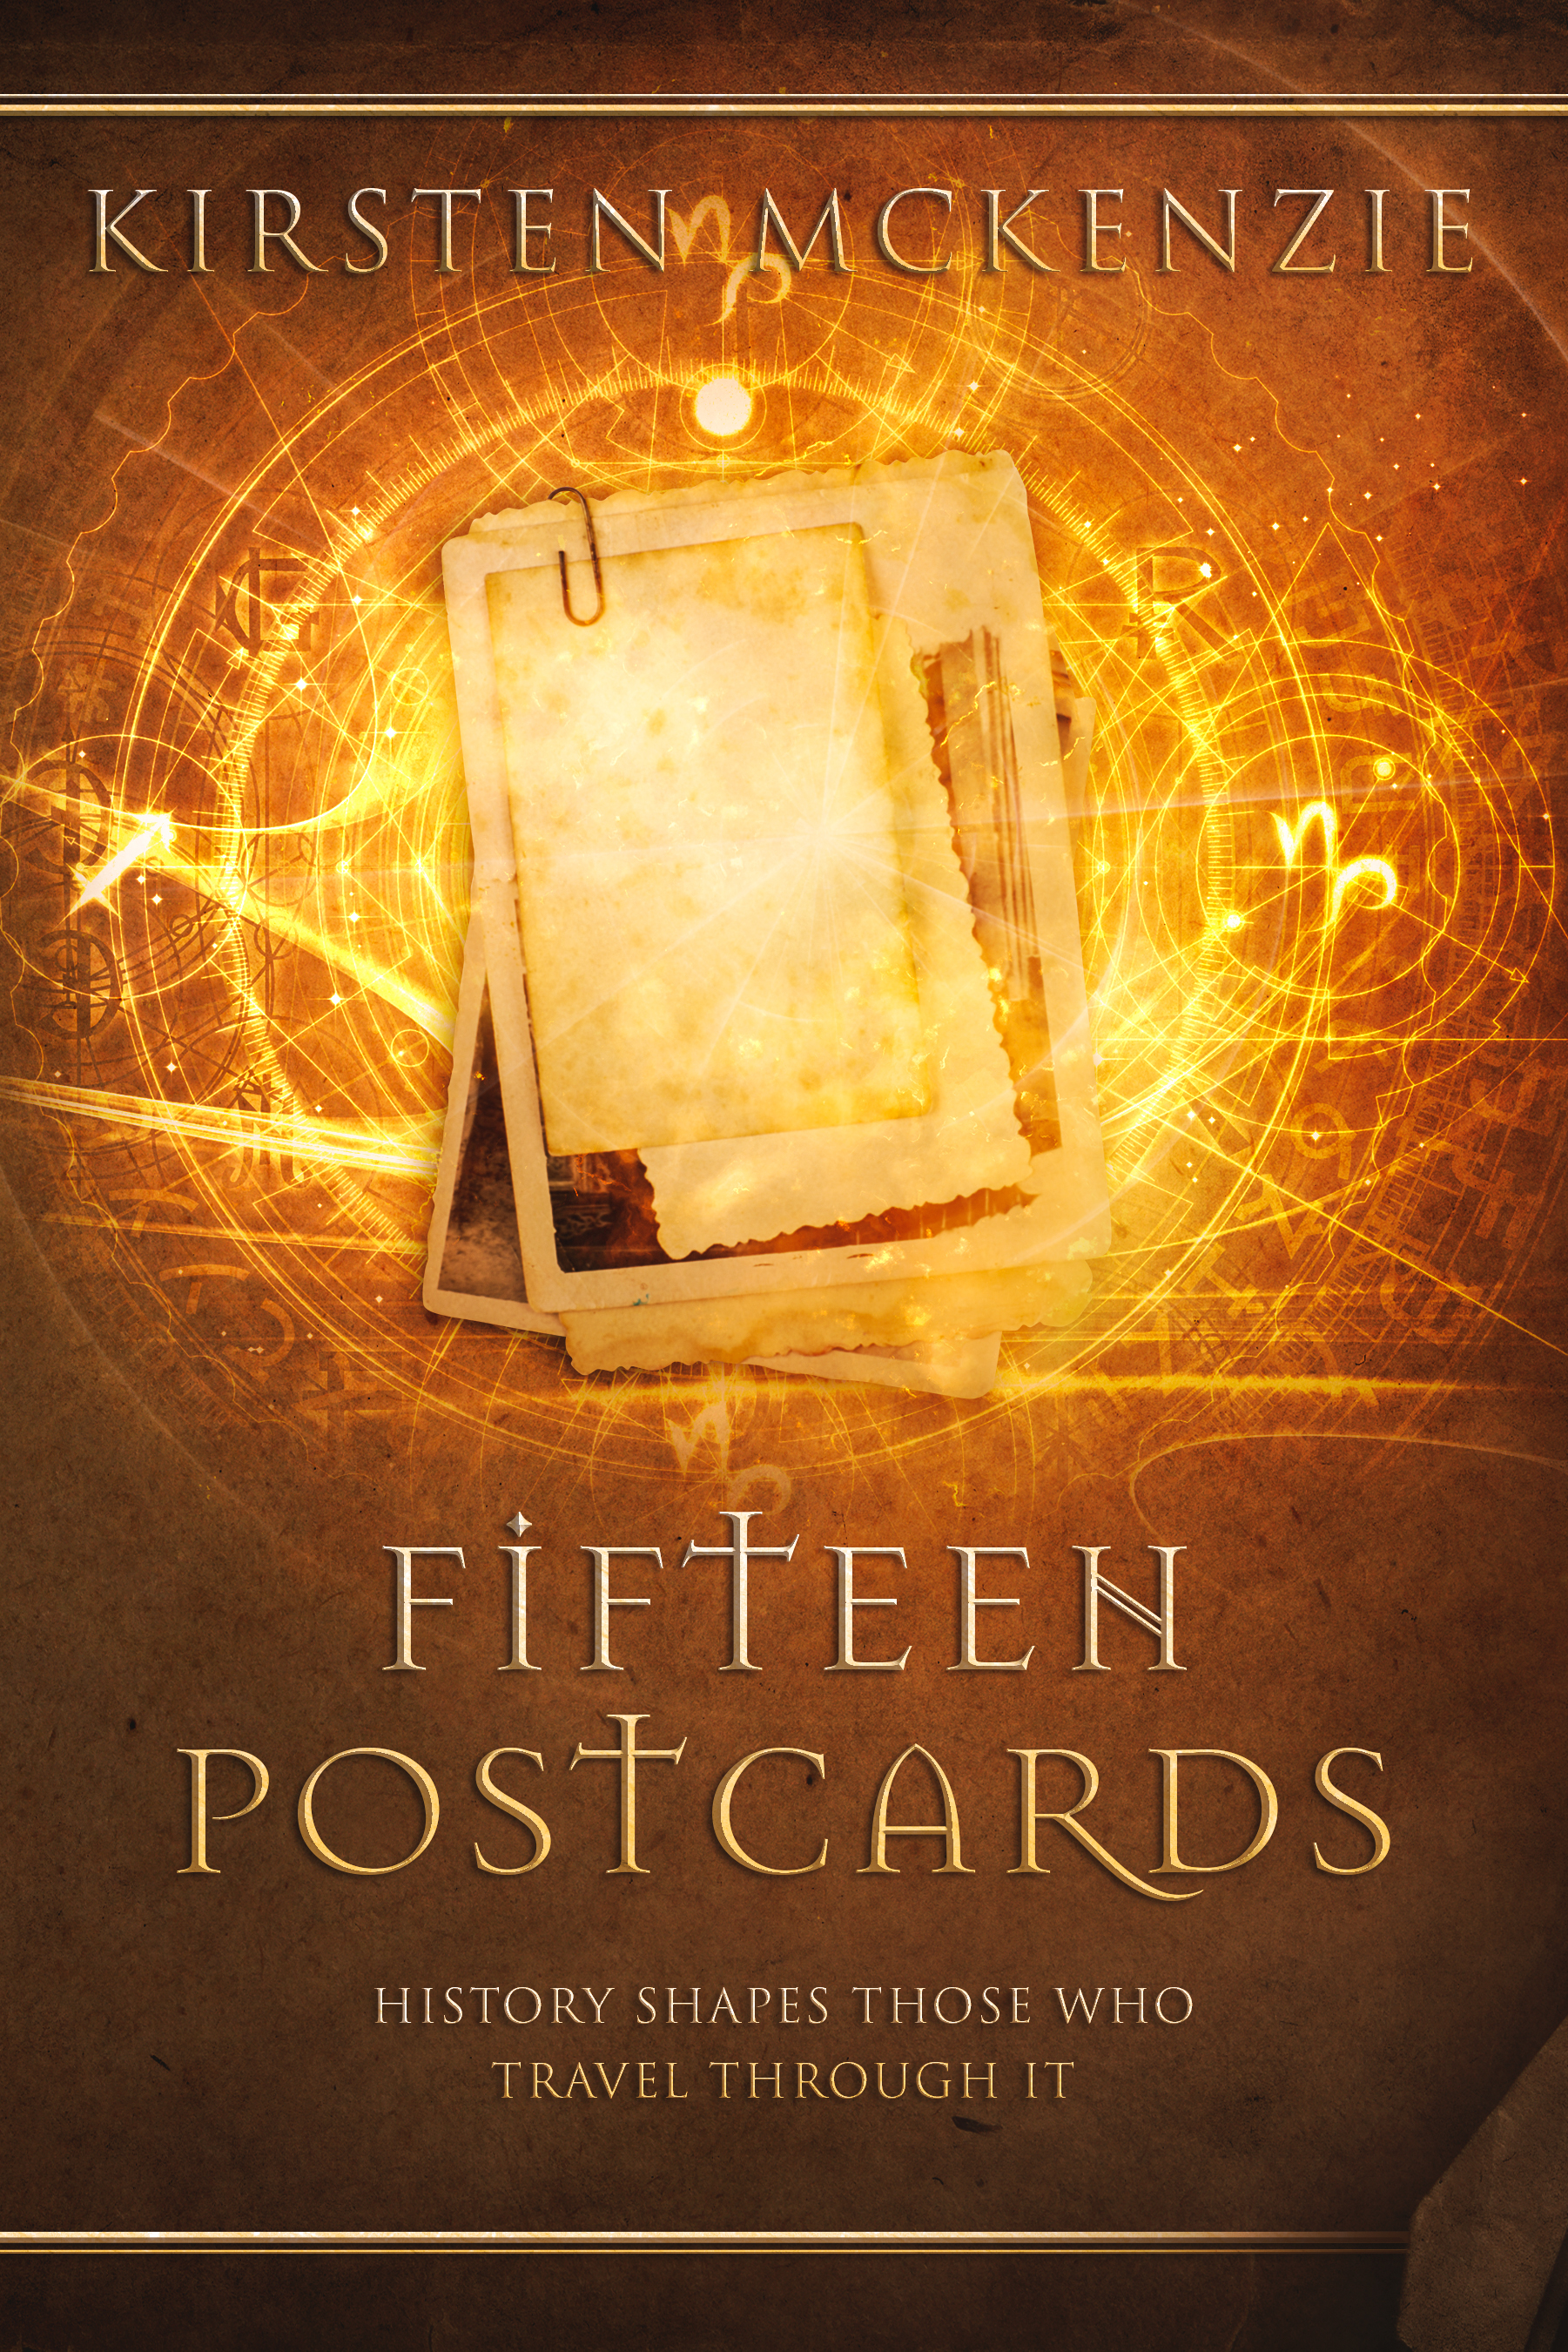 Fifteen Postcards - Book #1 in the Old Curiosity Shop series